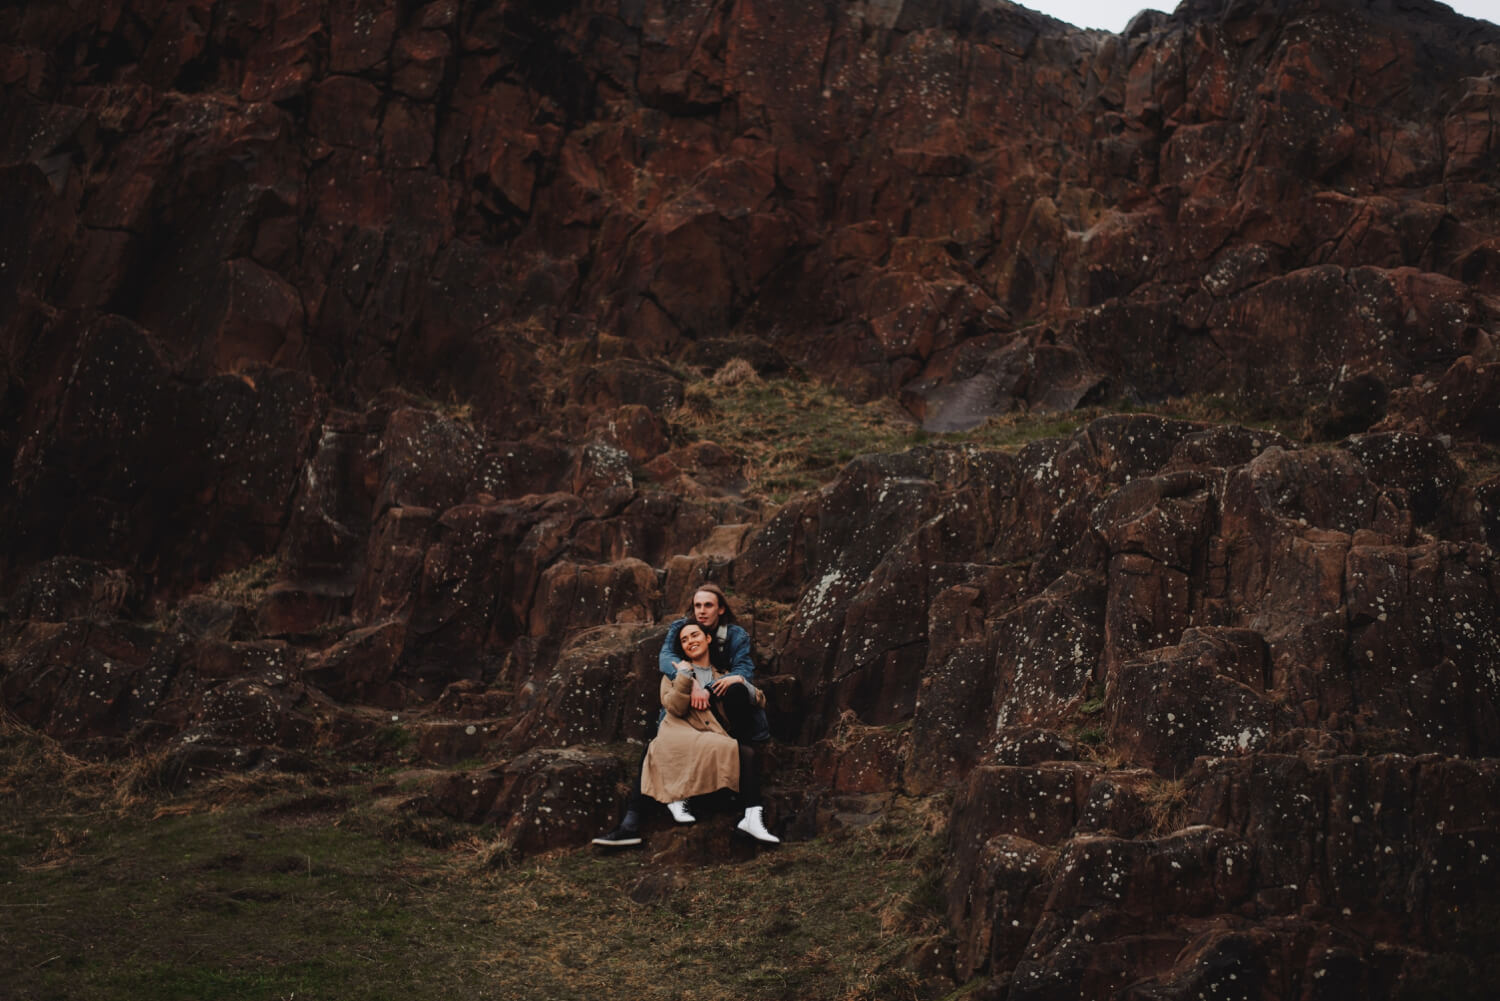 Scotland Couple Photoshoot - Destination wedding photographer - The Adamkovi, salisbury crags, couple in love